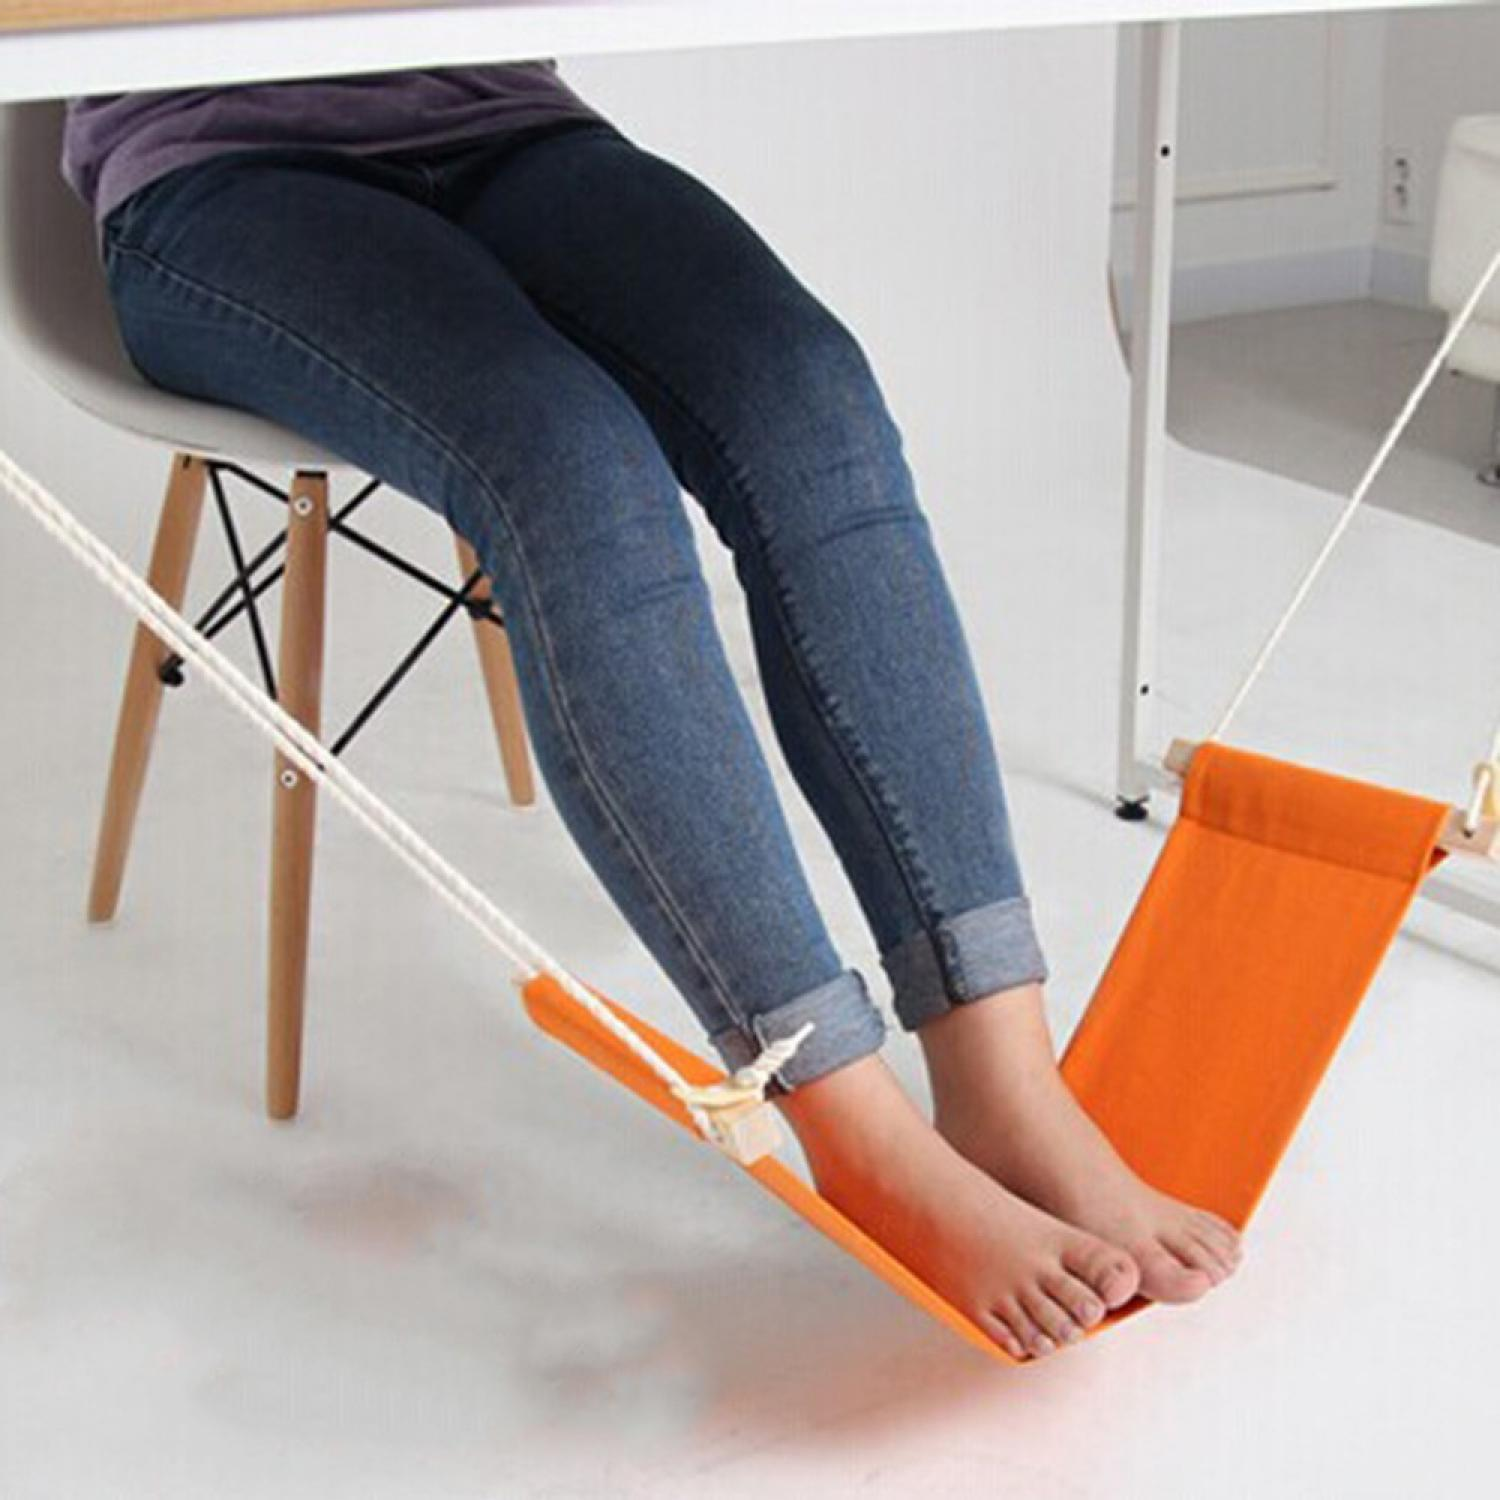 Mini Hammock Tablet Foot Rest / Pijakan Kaki Meja